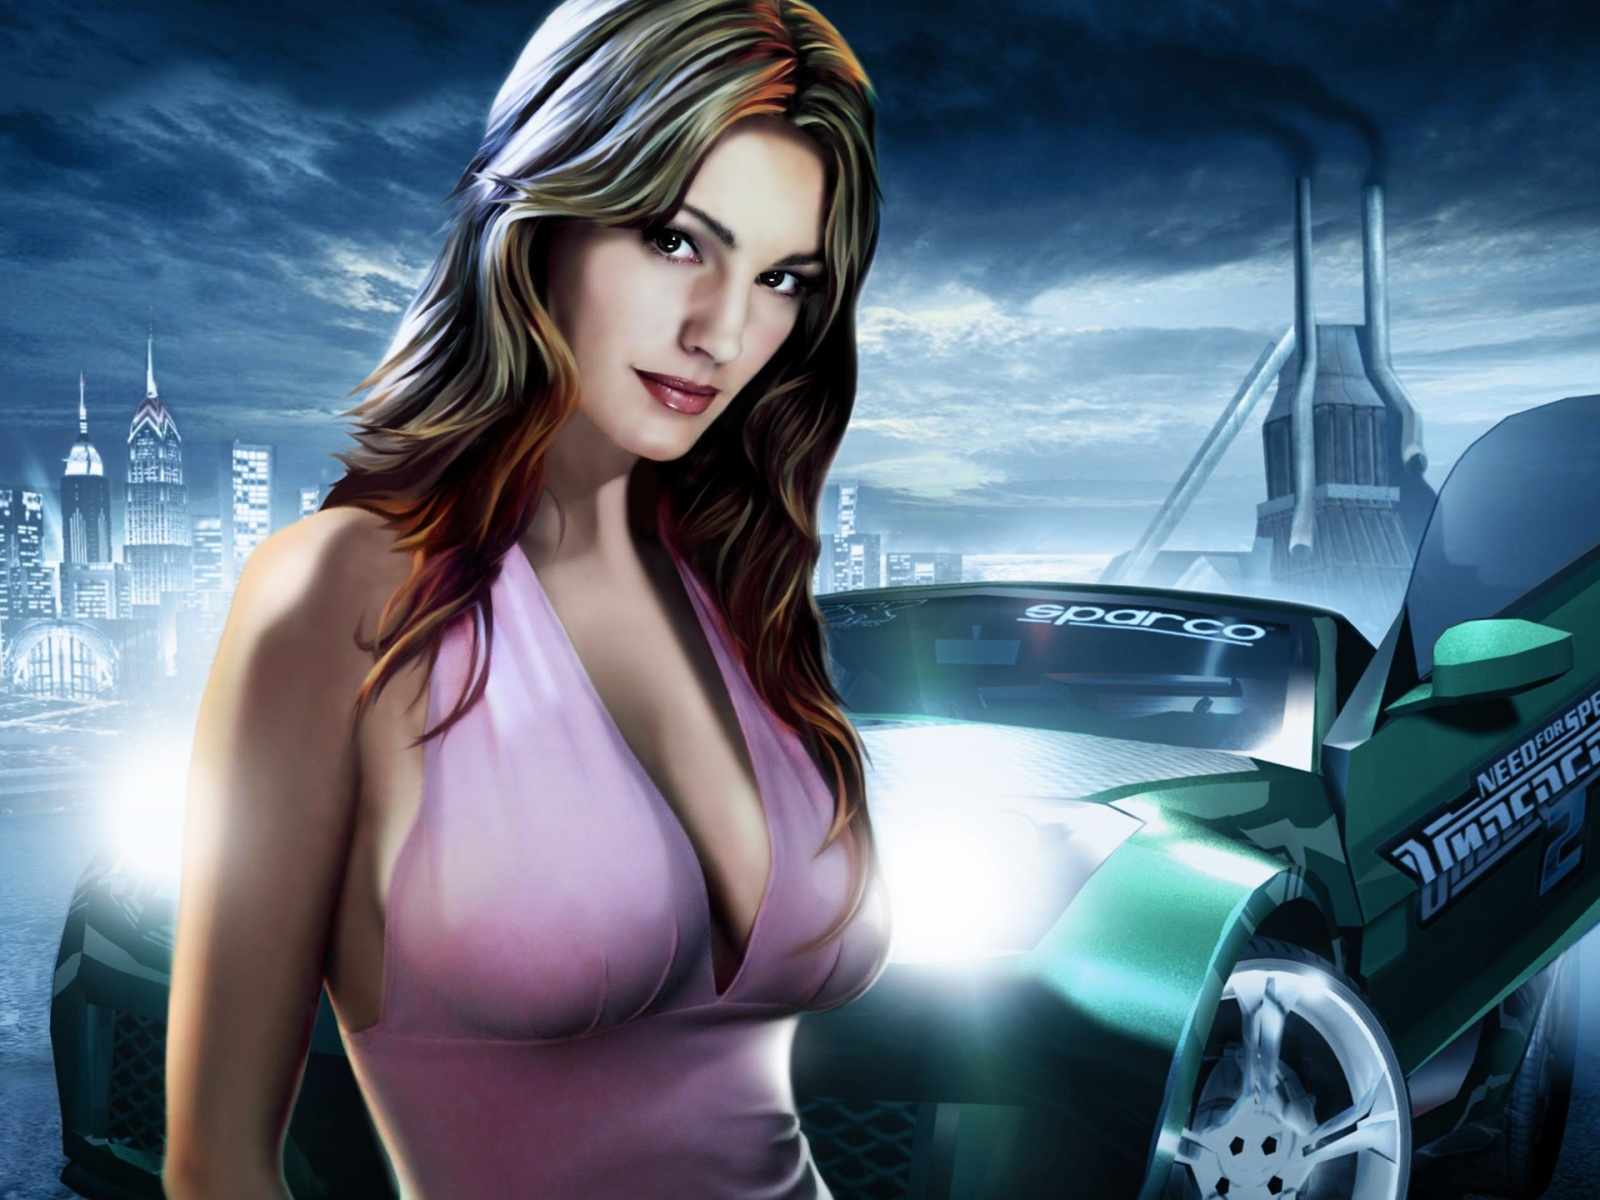 Need For Speed Girl Wallpapers In Jpg Format For Free Download